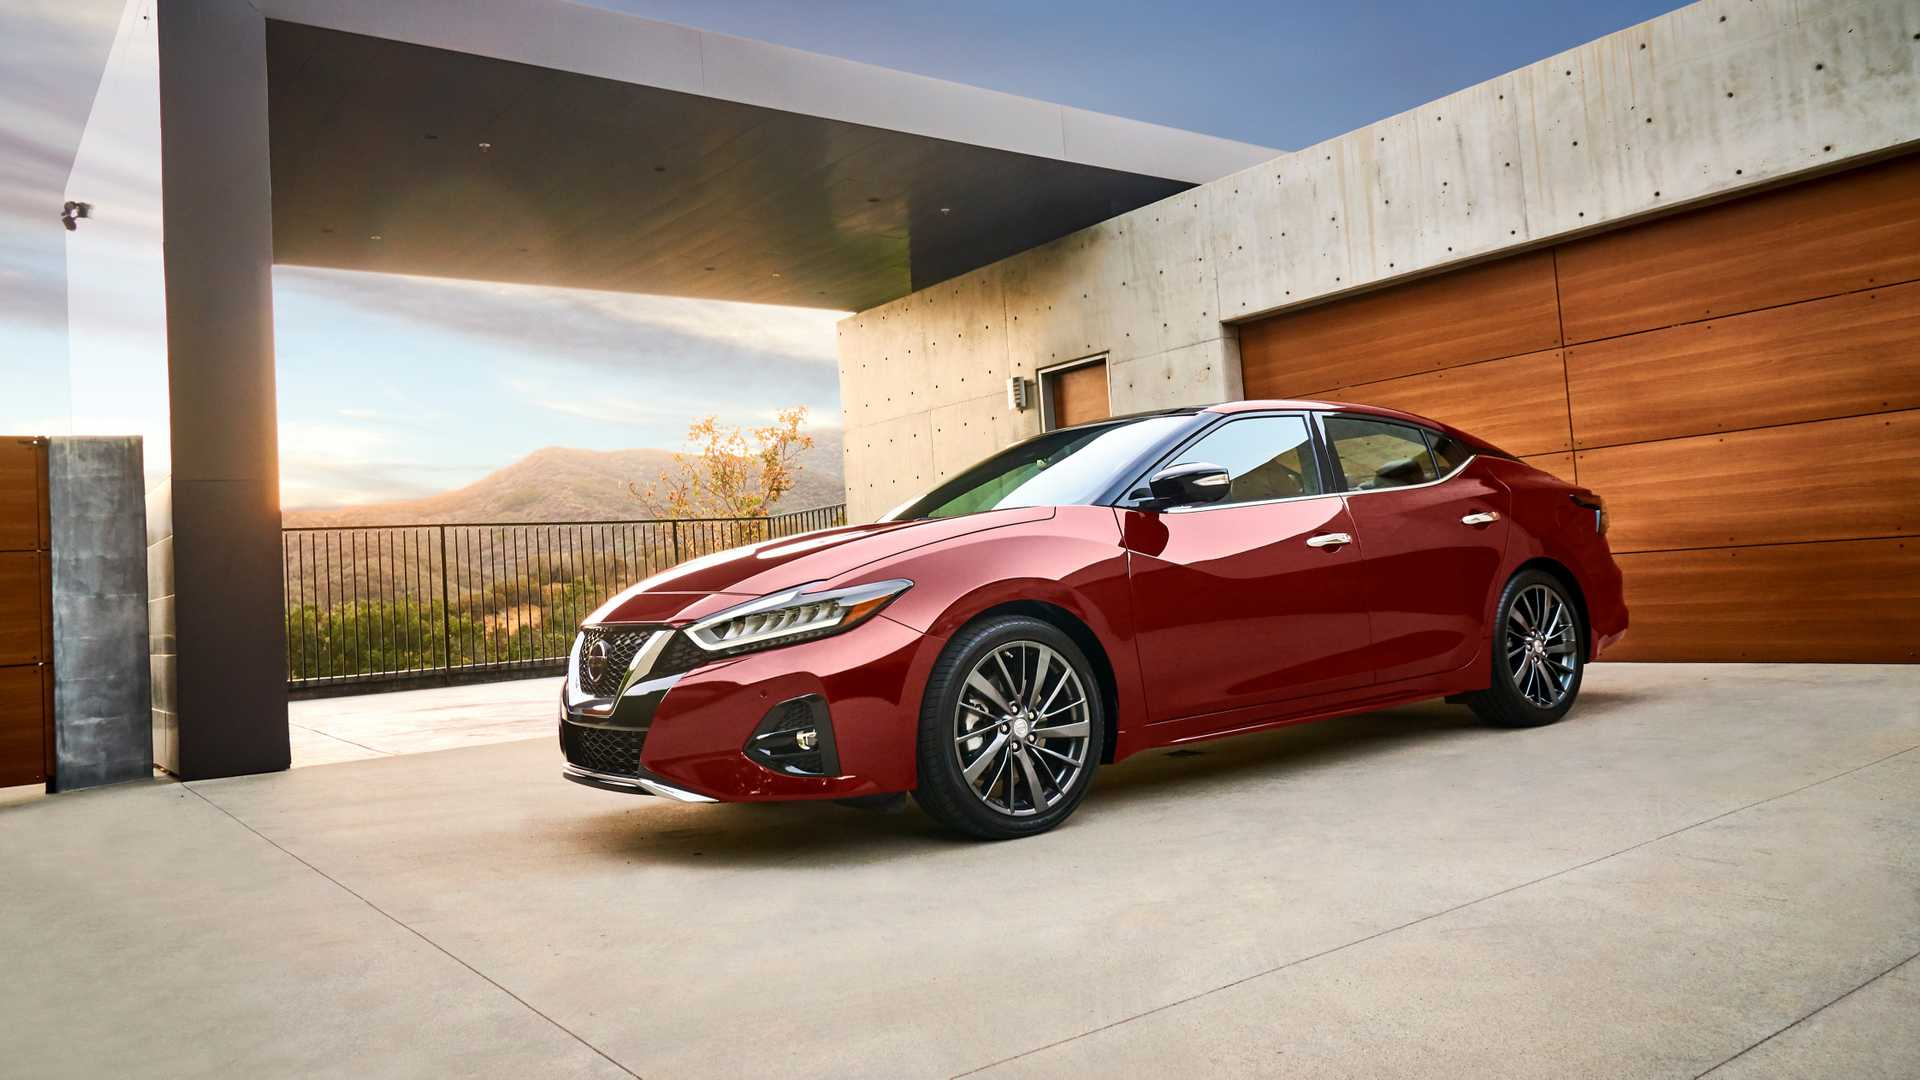 Nissan Maxima: Refreshed for More V-Motion